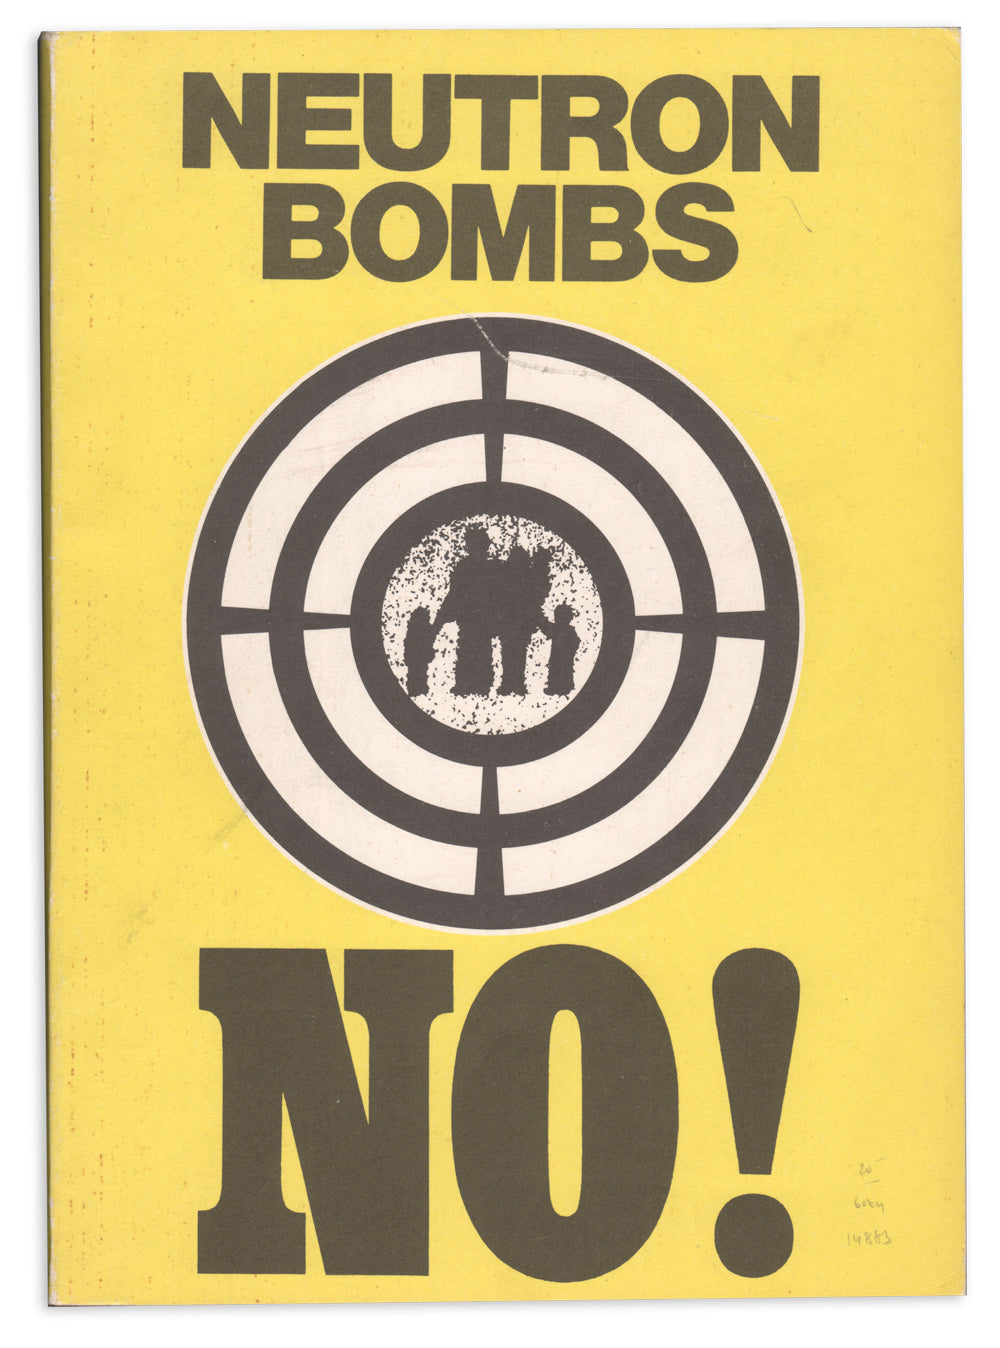 Neutron Bombs No! In the Name of Life Itself, Ban the Neutron Bomb